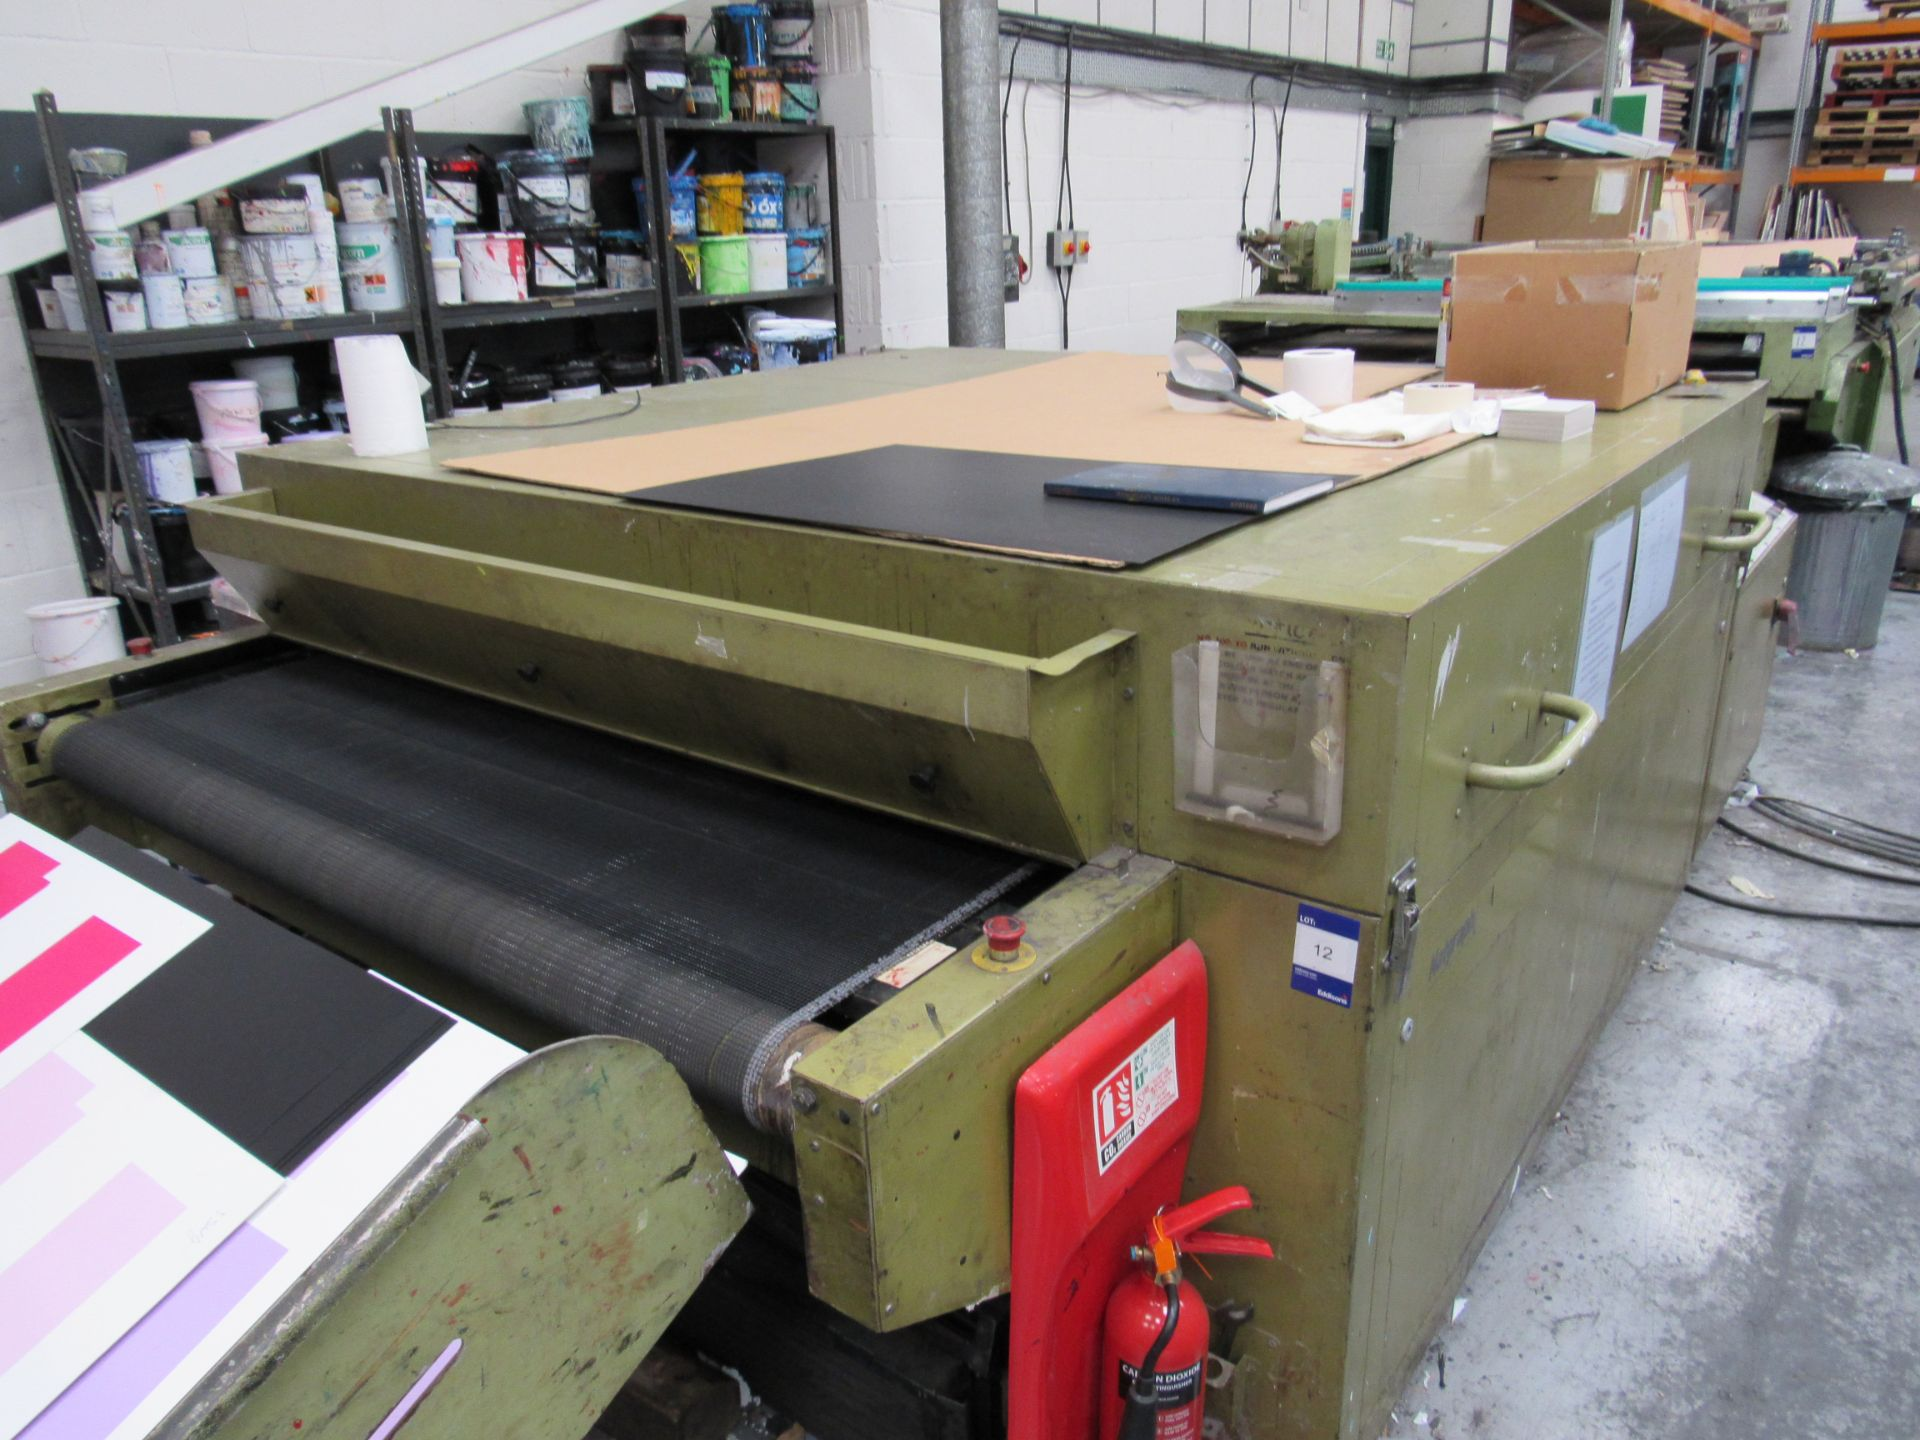 Sias Print Serifast 117.180 Screen Printer Serial Number 88745 with Natgraph 155-2000E UV Dryer Line - Image 2 of 10